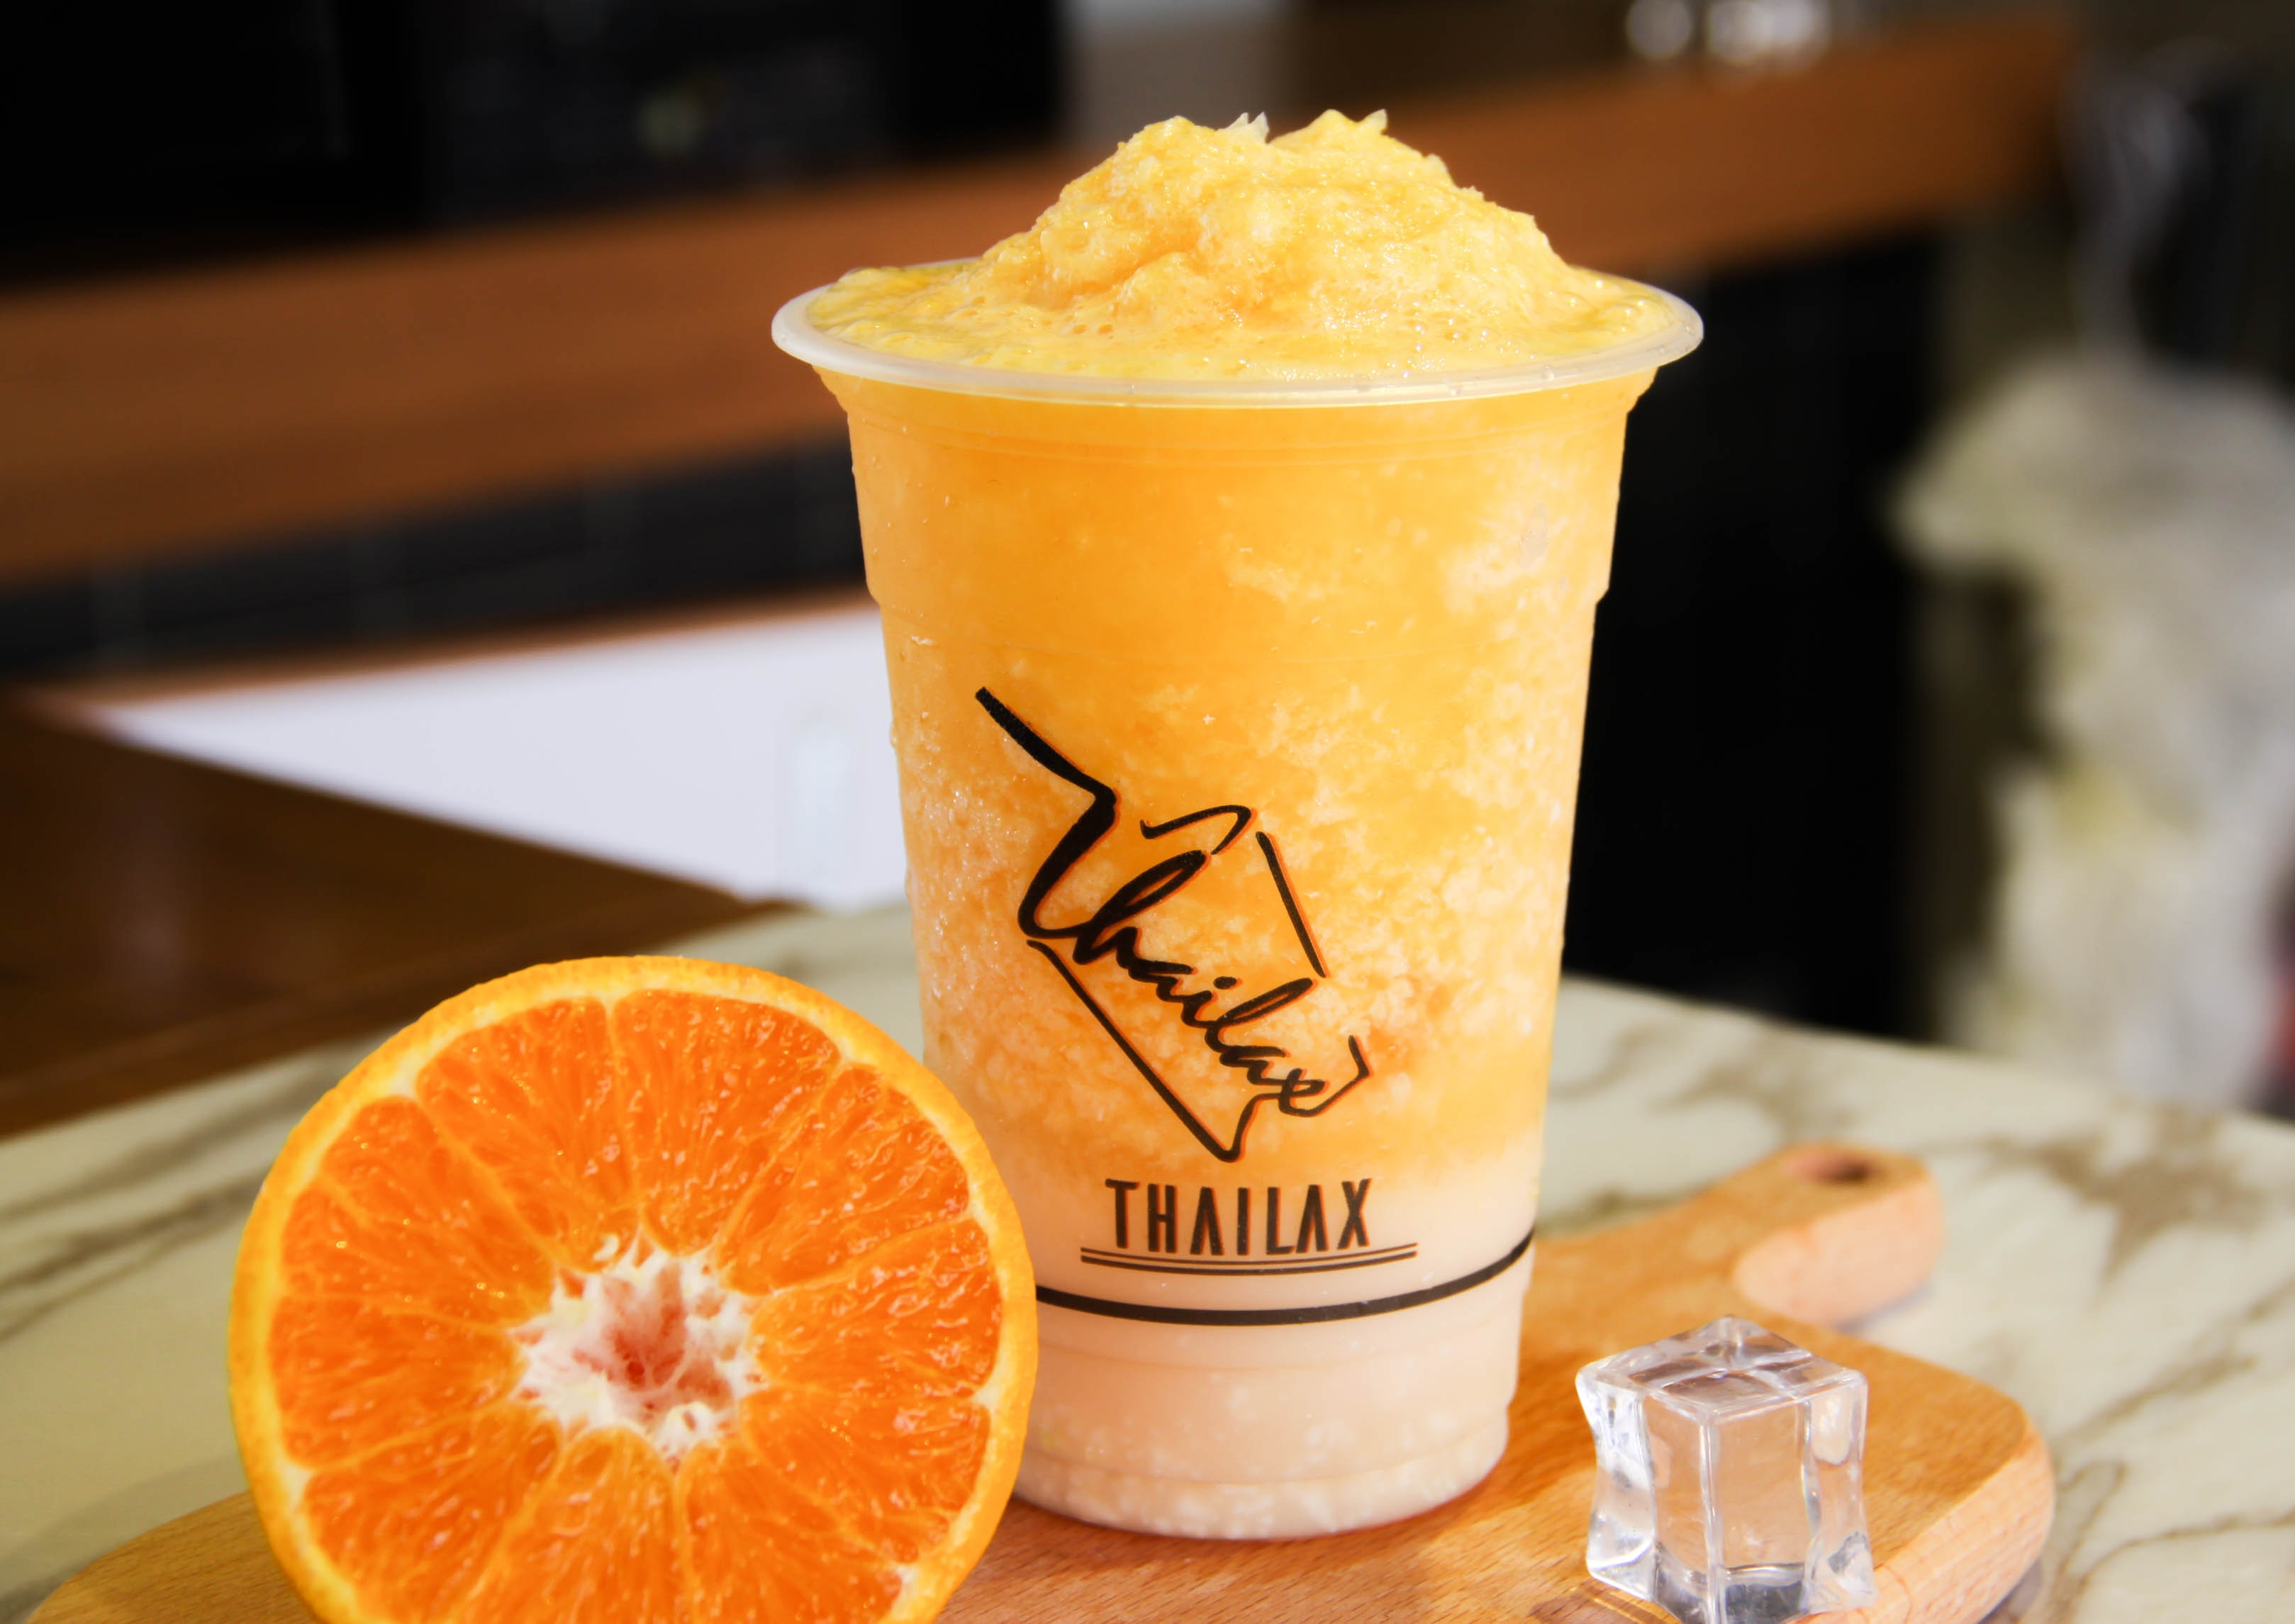 orange Thailax lemon shake on wooden chop board